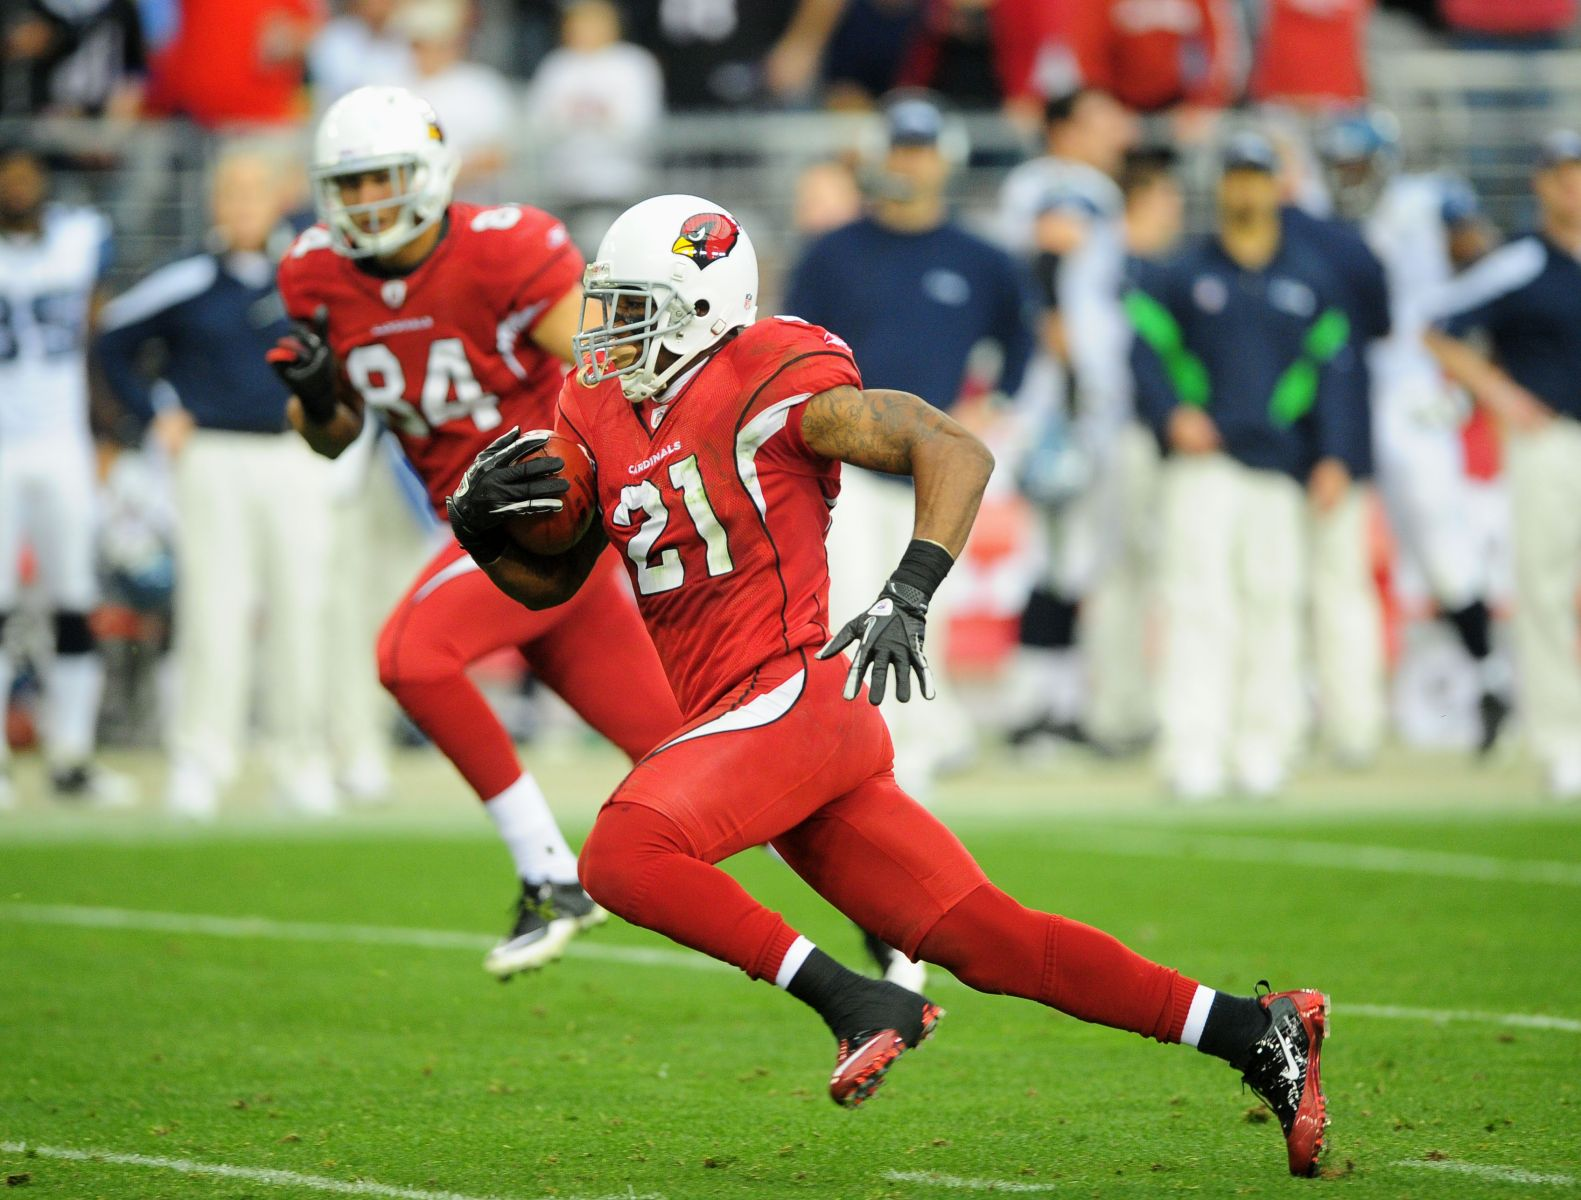 Patrick Peterson to playing time on offense